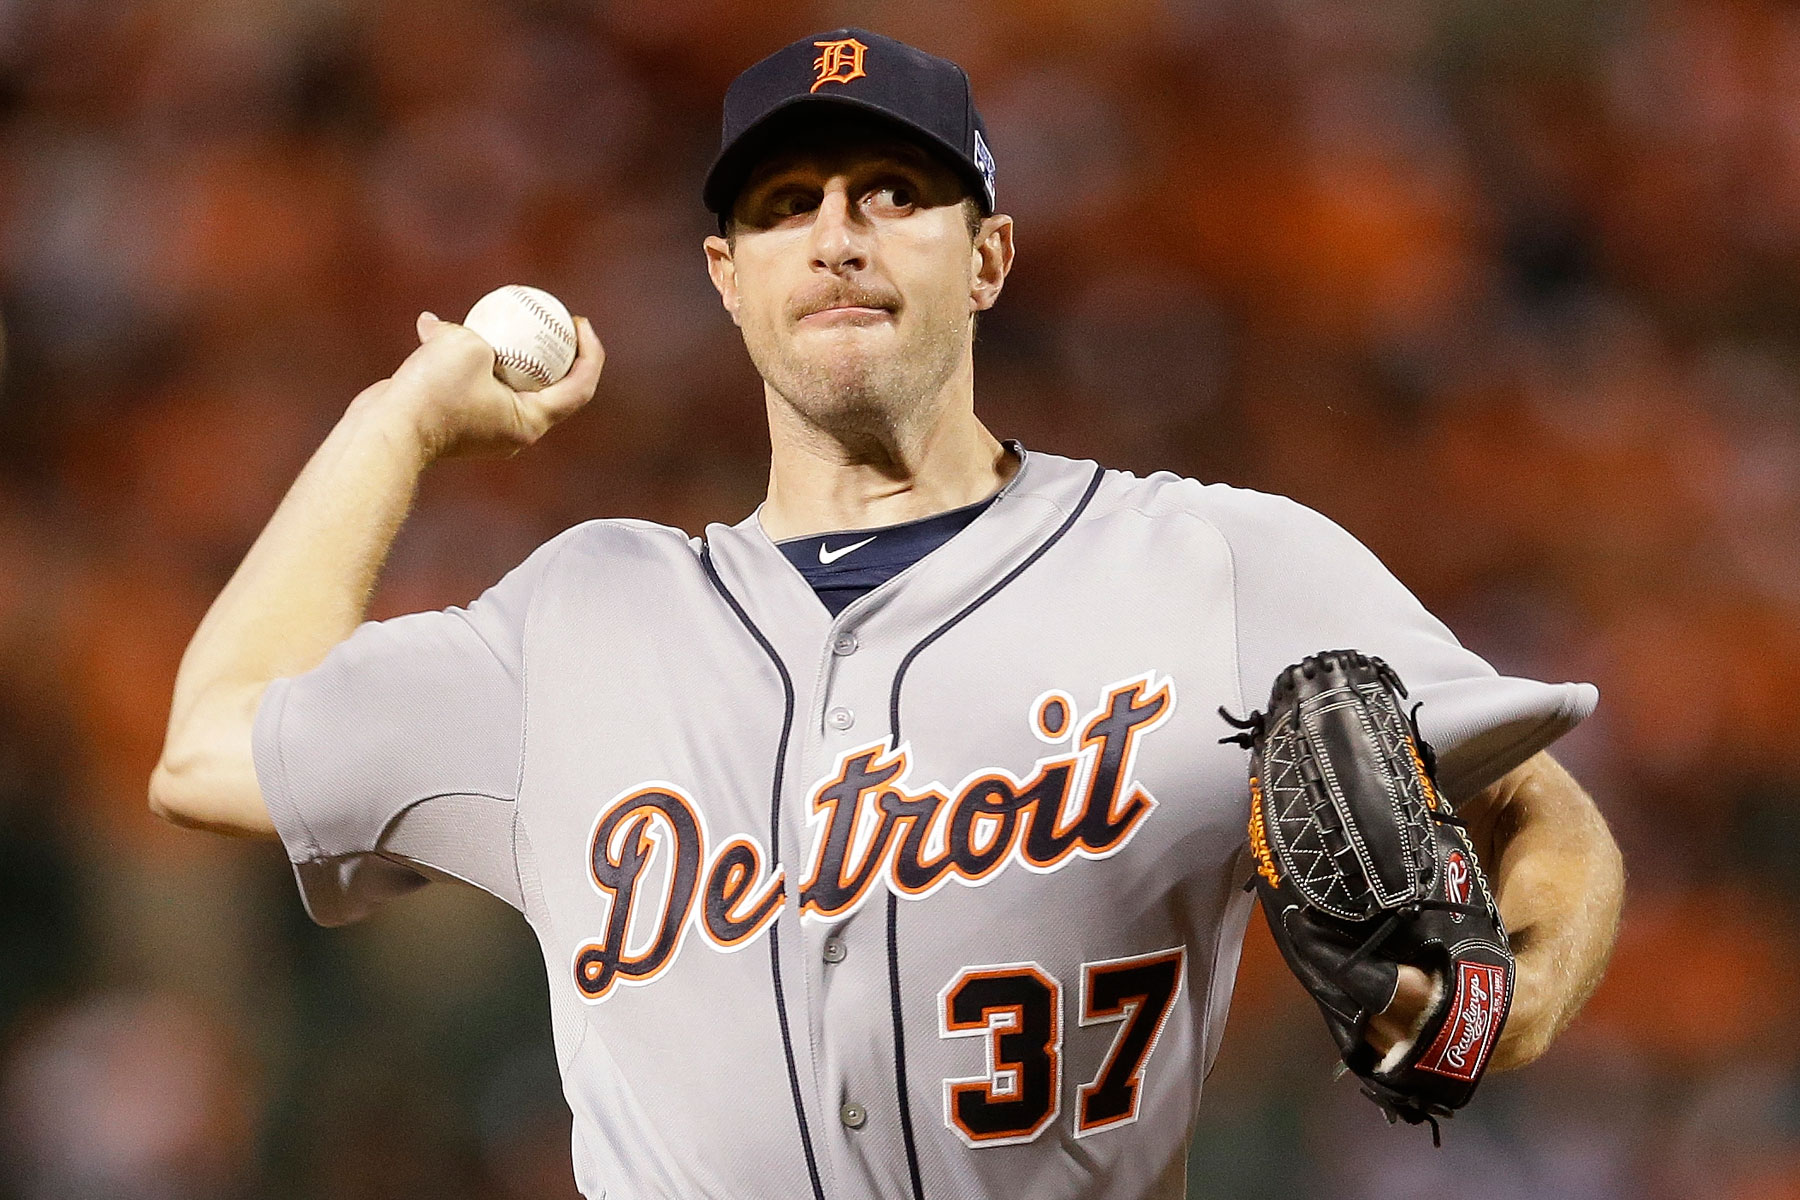 Reports: Scherzer, Nationals agree to 7-year contract